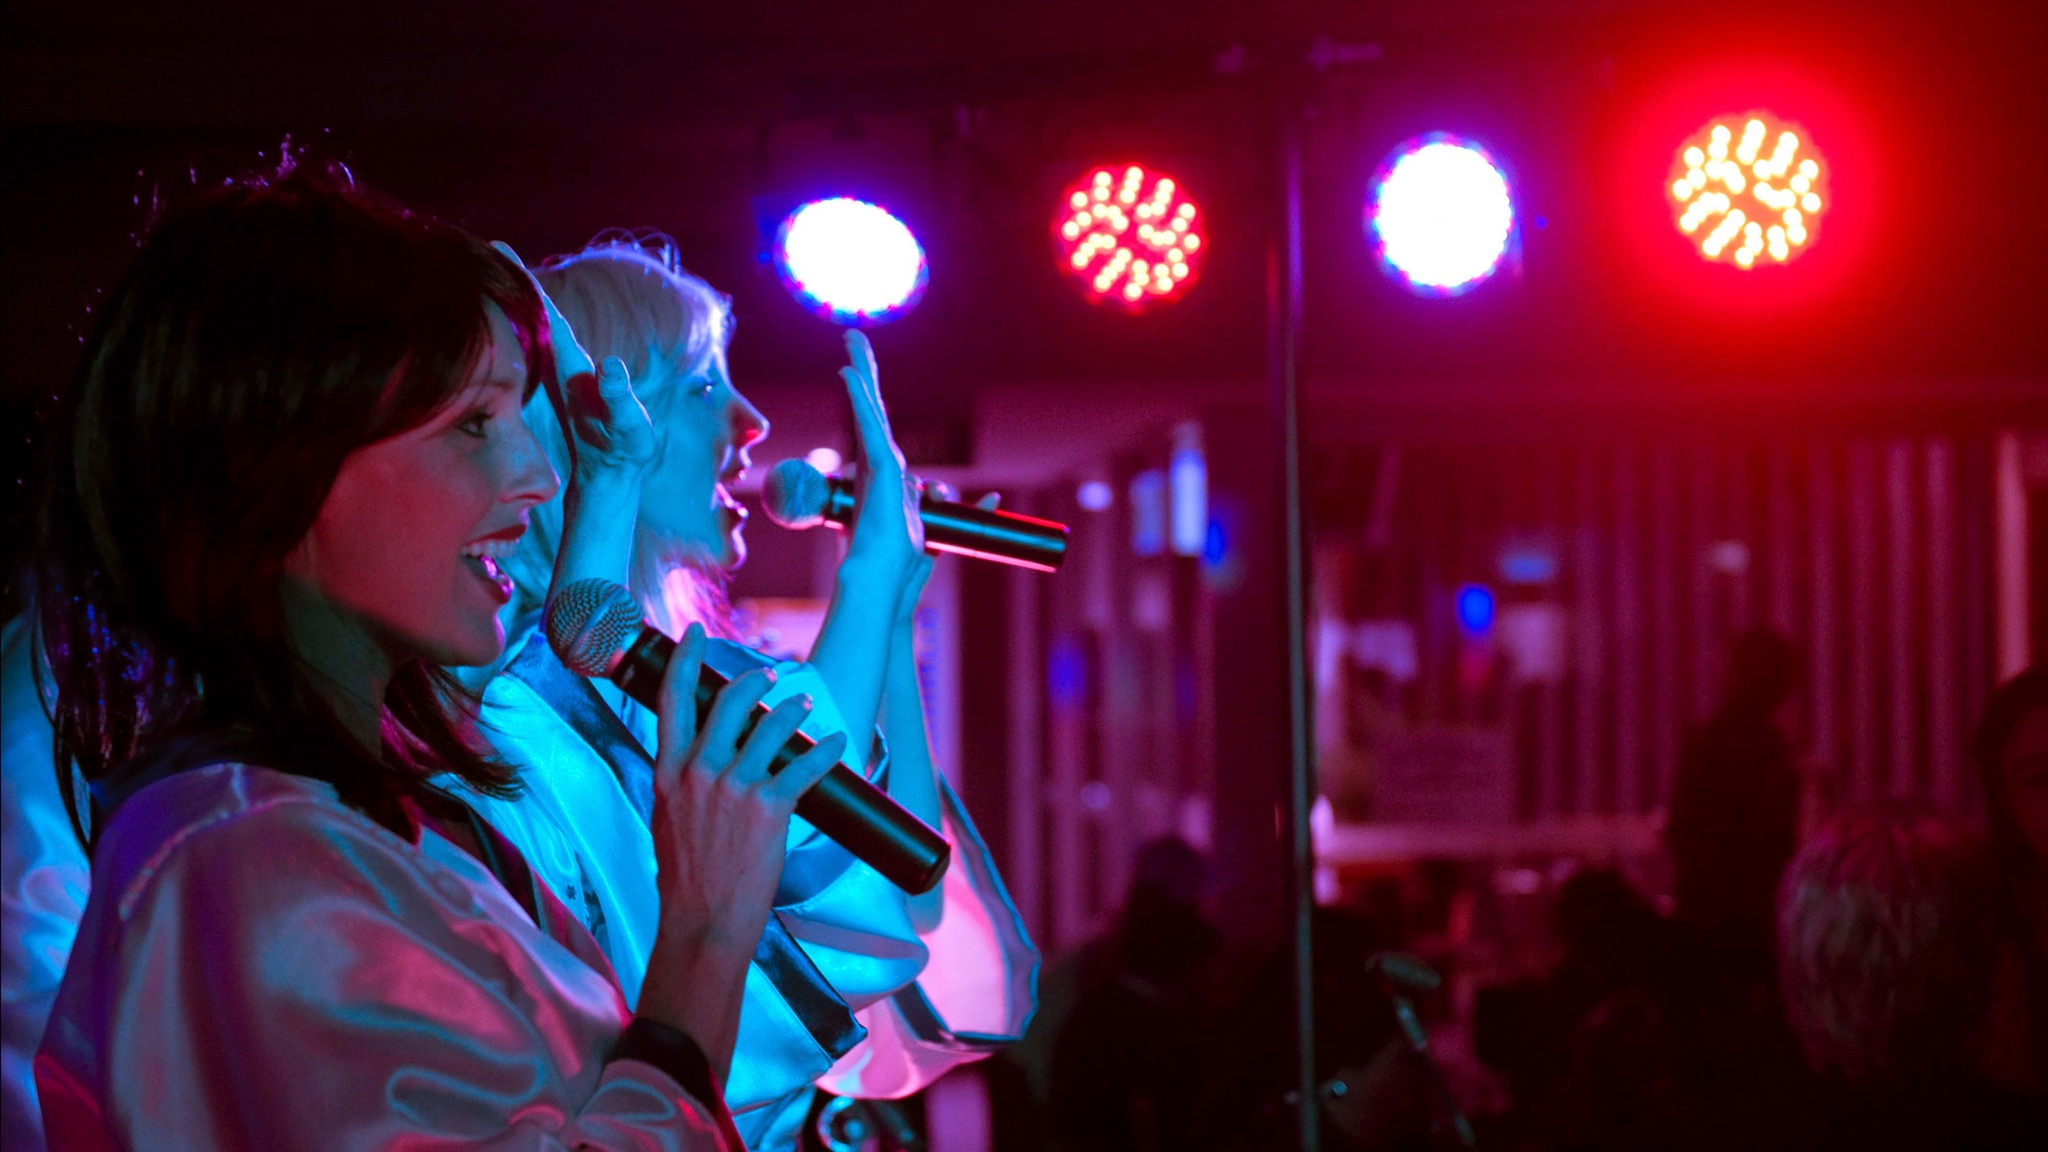 Bjorn to be Wild. Abba Tribute Show